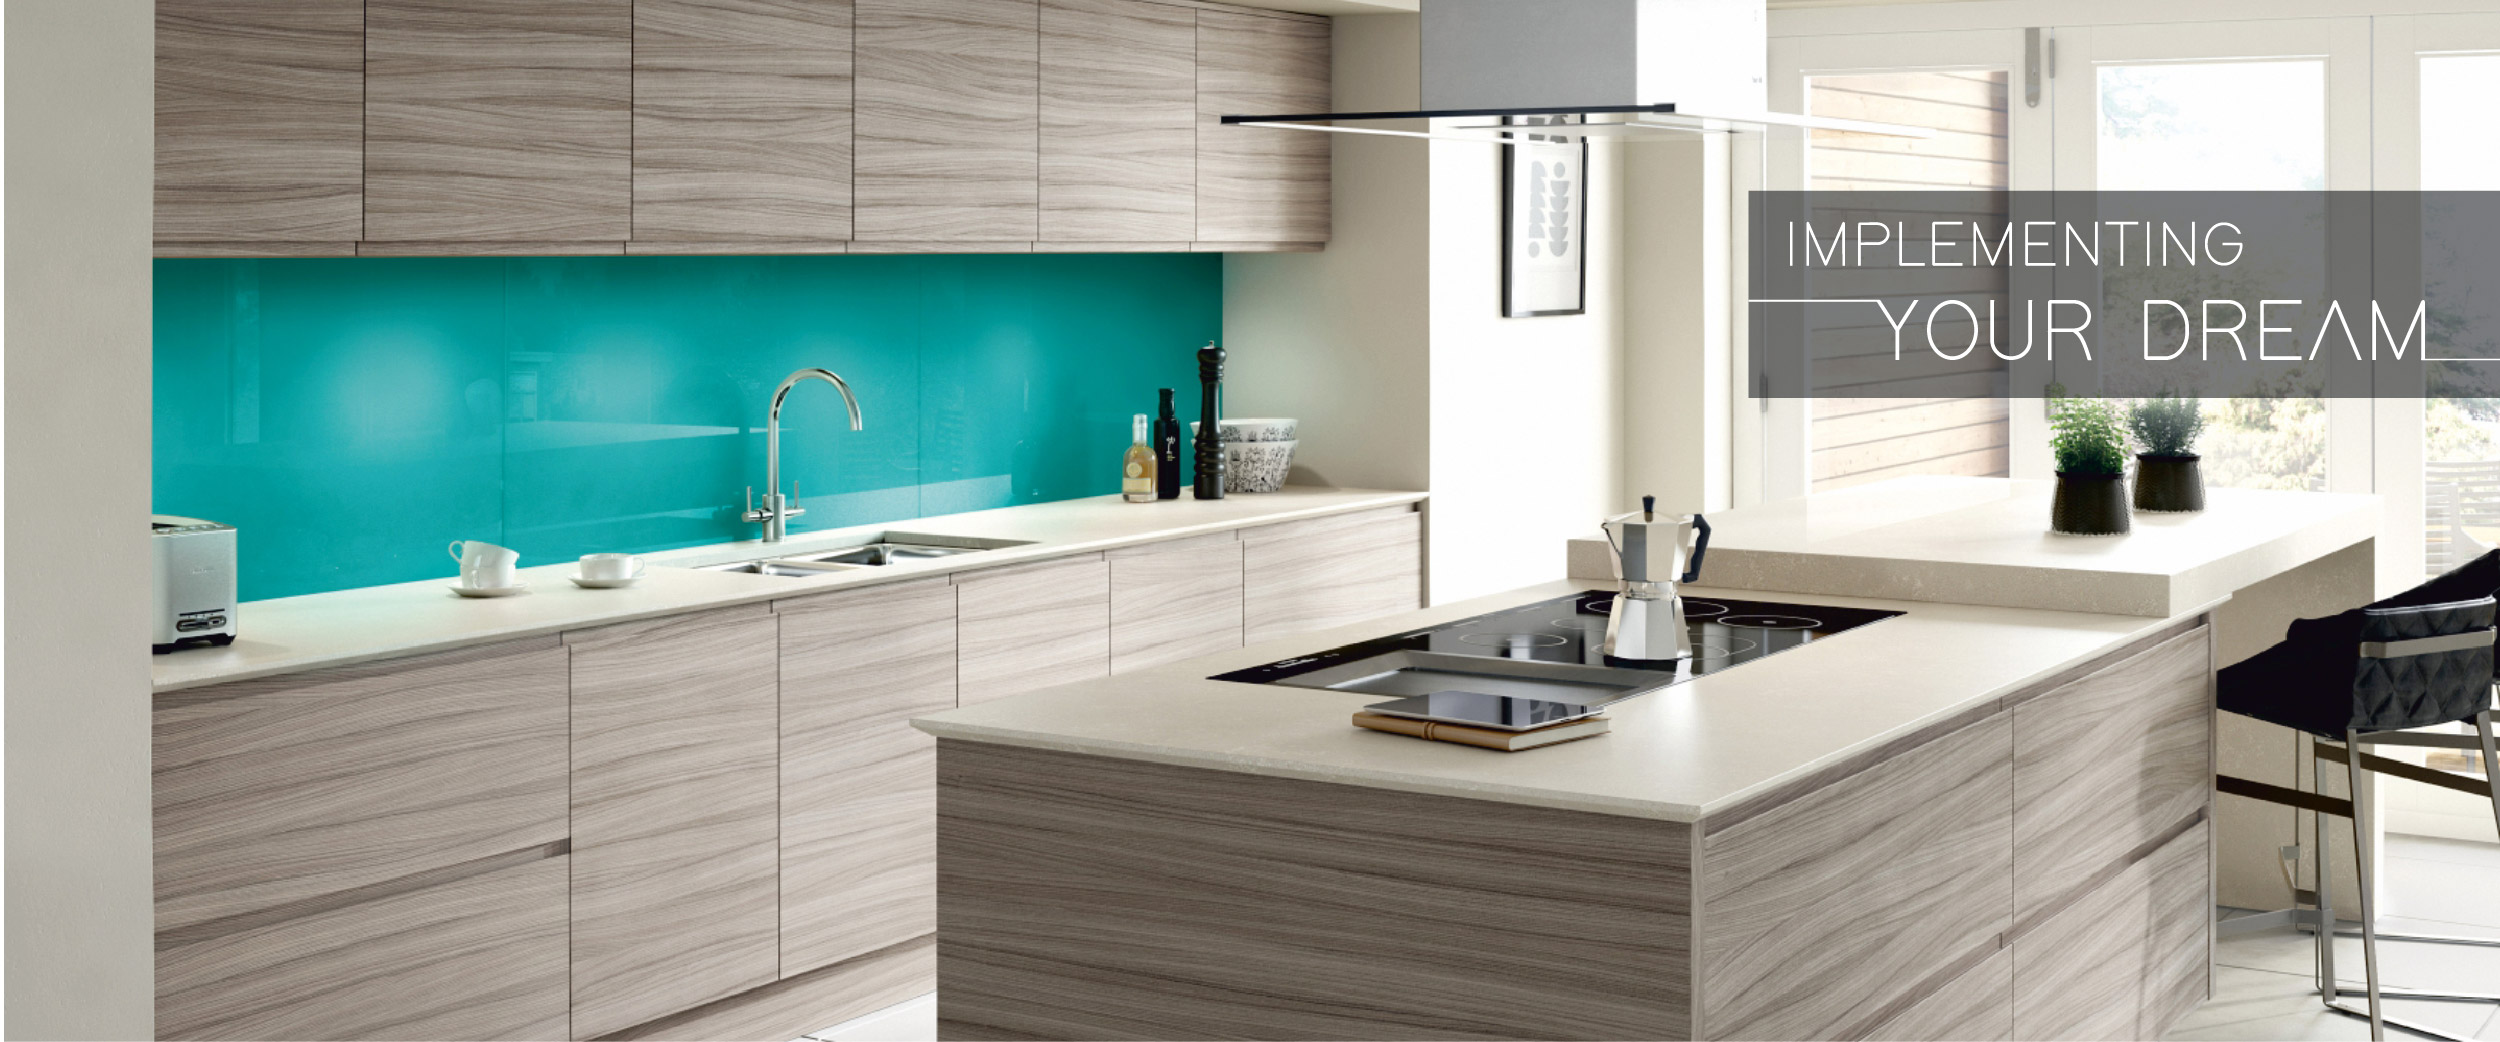 La decor Modular Kitchens in Goa | Wardrobe | Renovation